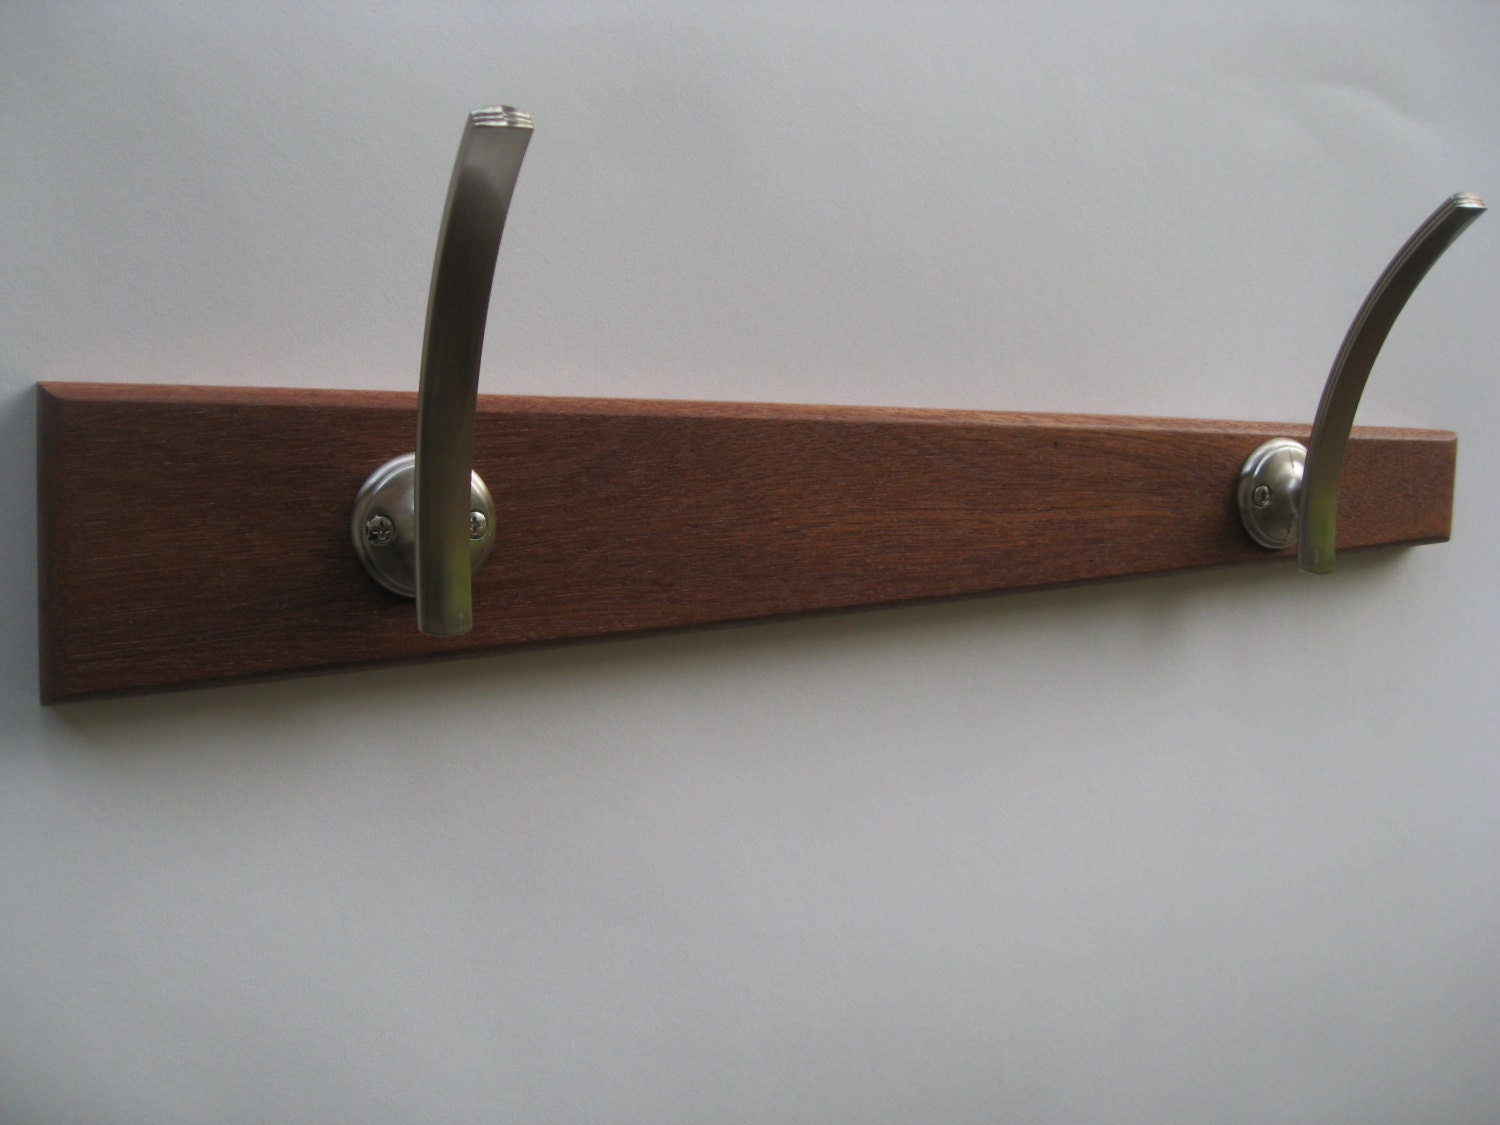 Modern coat rack wall hanging coat rack by recovered design for Contemporary coat hooks